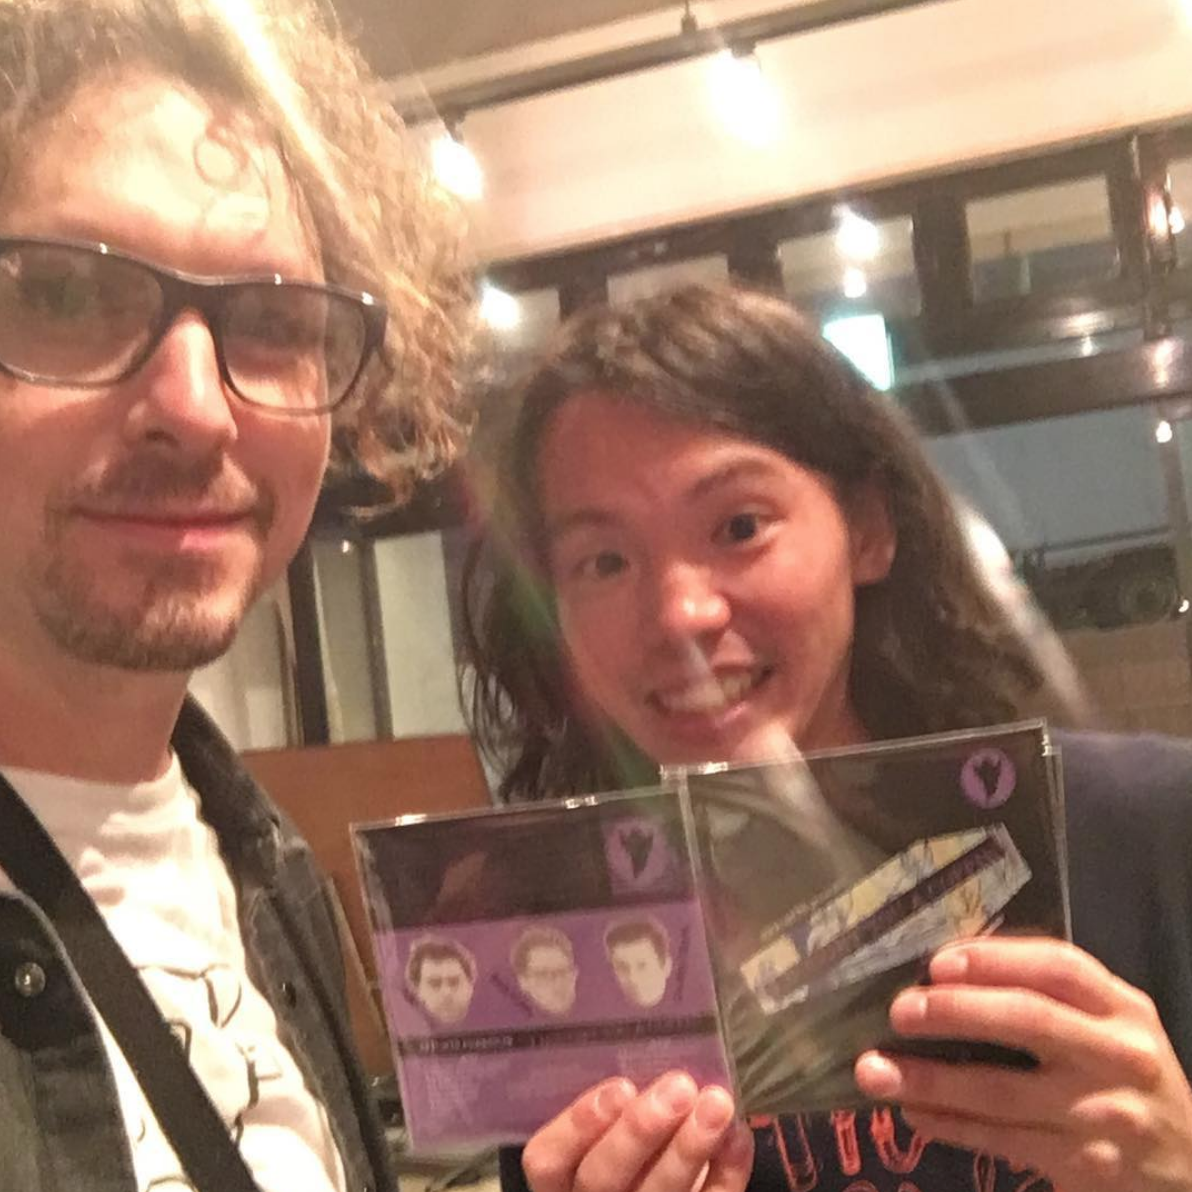 10.09.2018 Zach drops off a stack of CDs at Like A Fool Records in Tokyo.